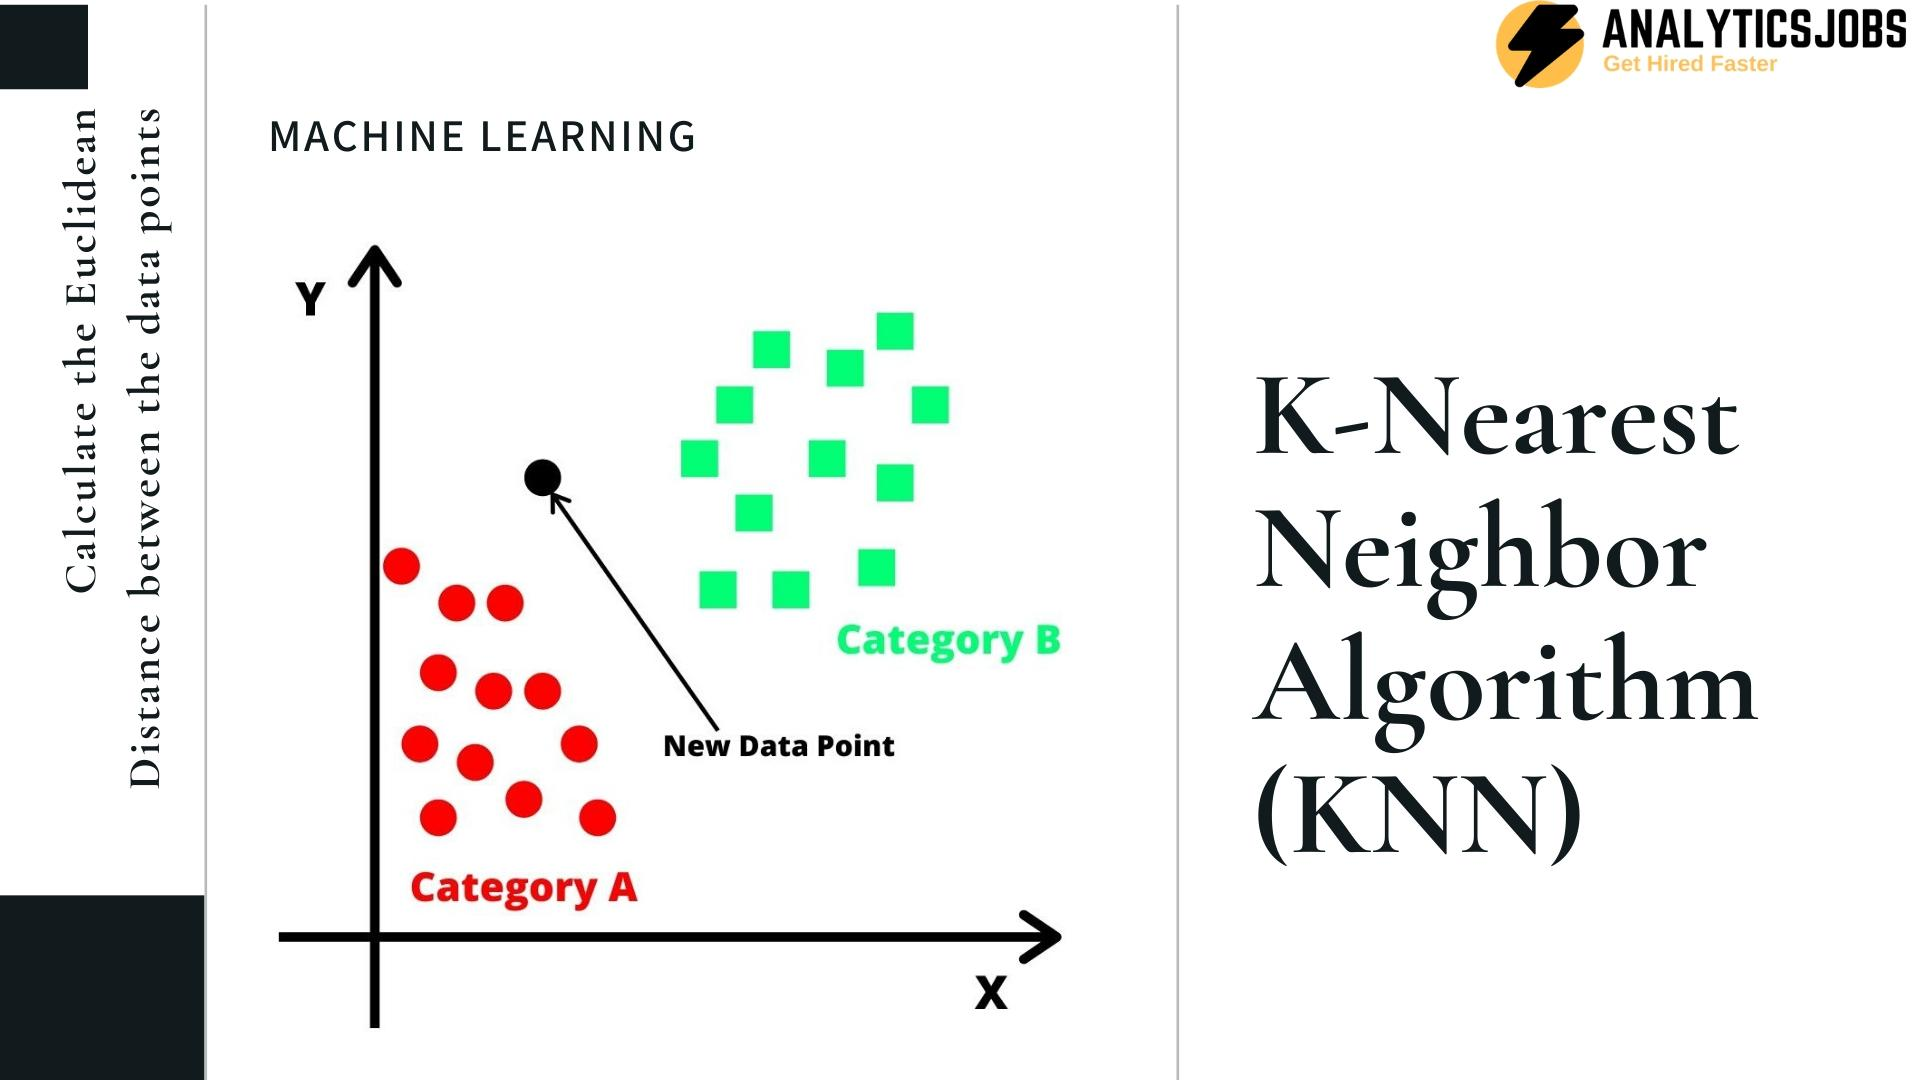 K-Nearest Neighbor Algorithm (KNN) in Machine Learning